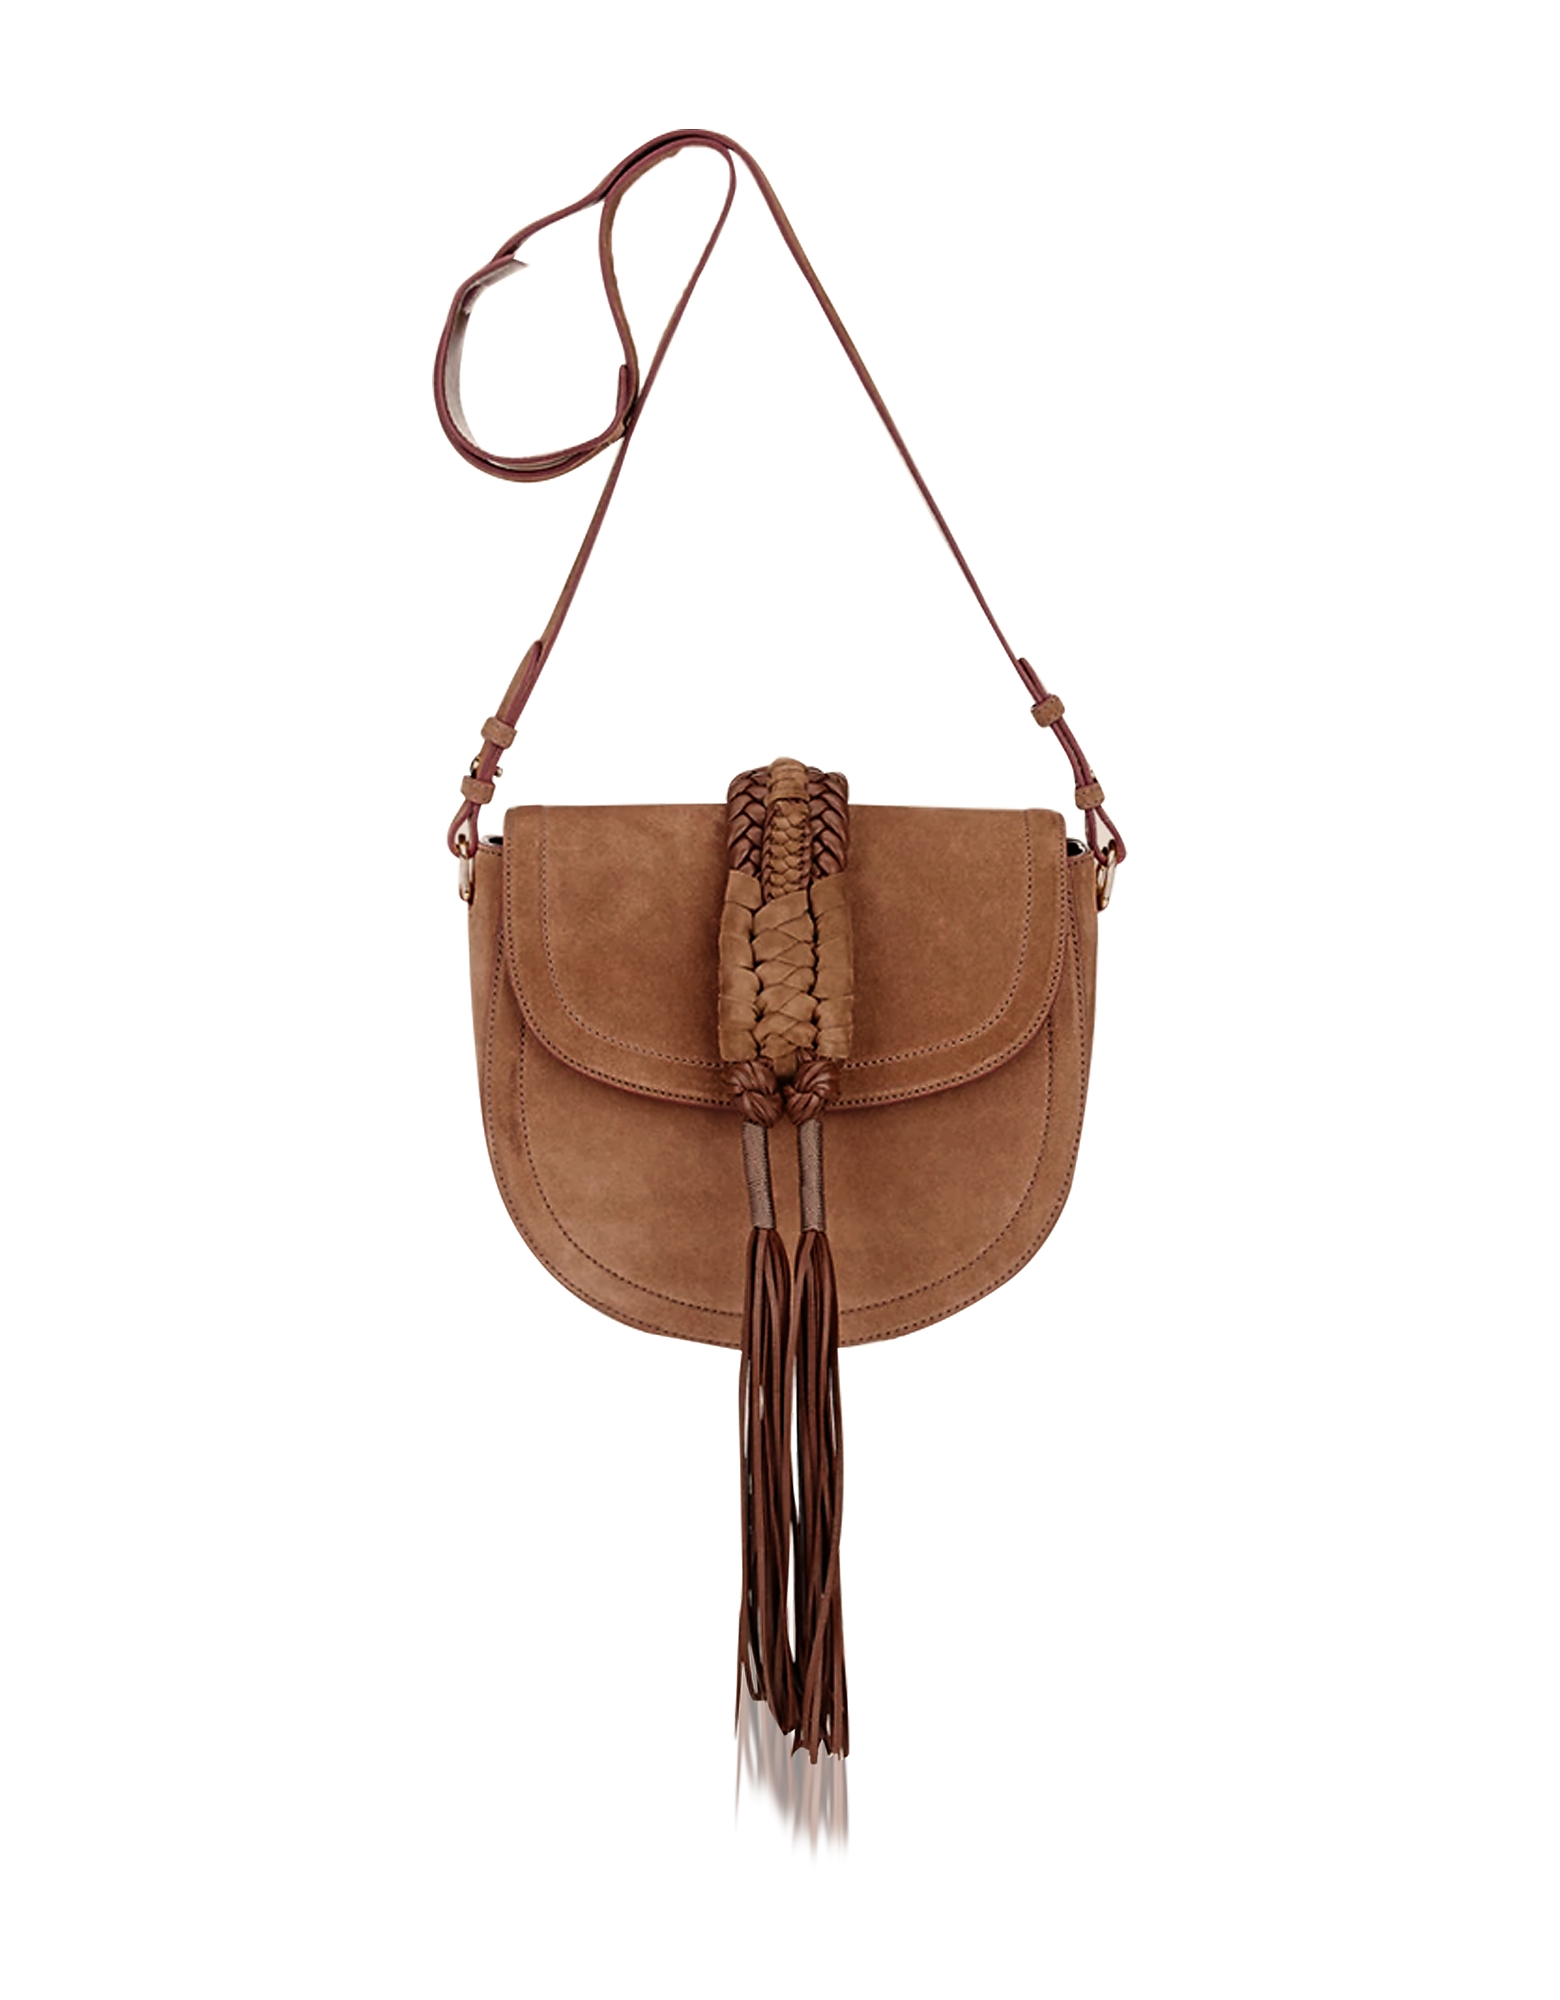 Altuzarra Handbags, Ghianda Knot Suede Chocolate Saddle Bag